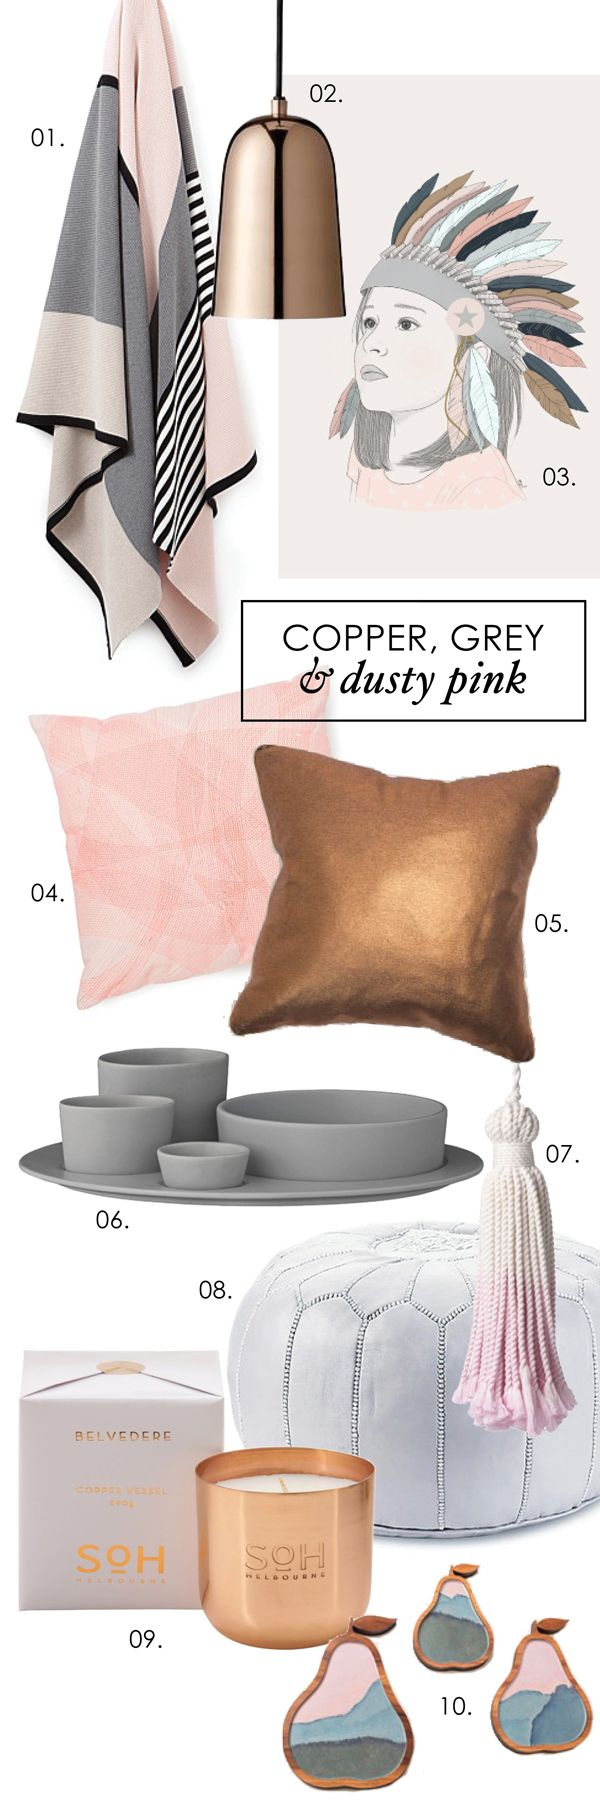 Adore Home magazine - Blog - Copper, grey and dusty pinks